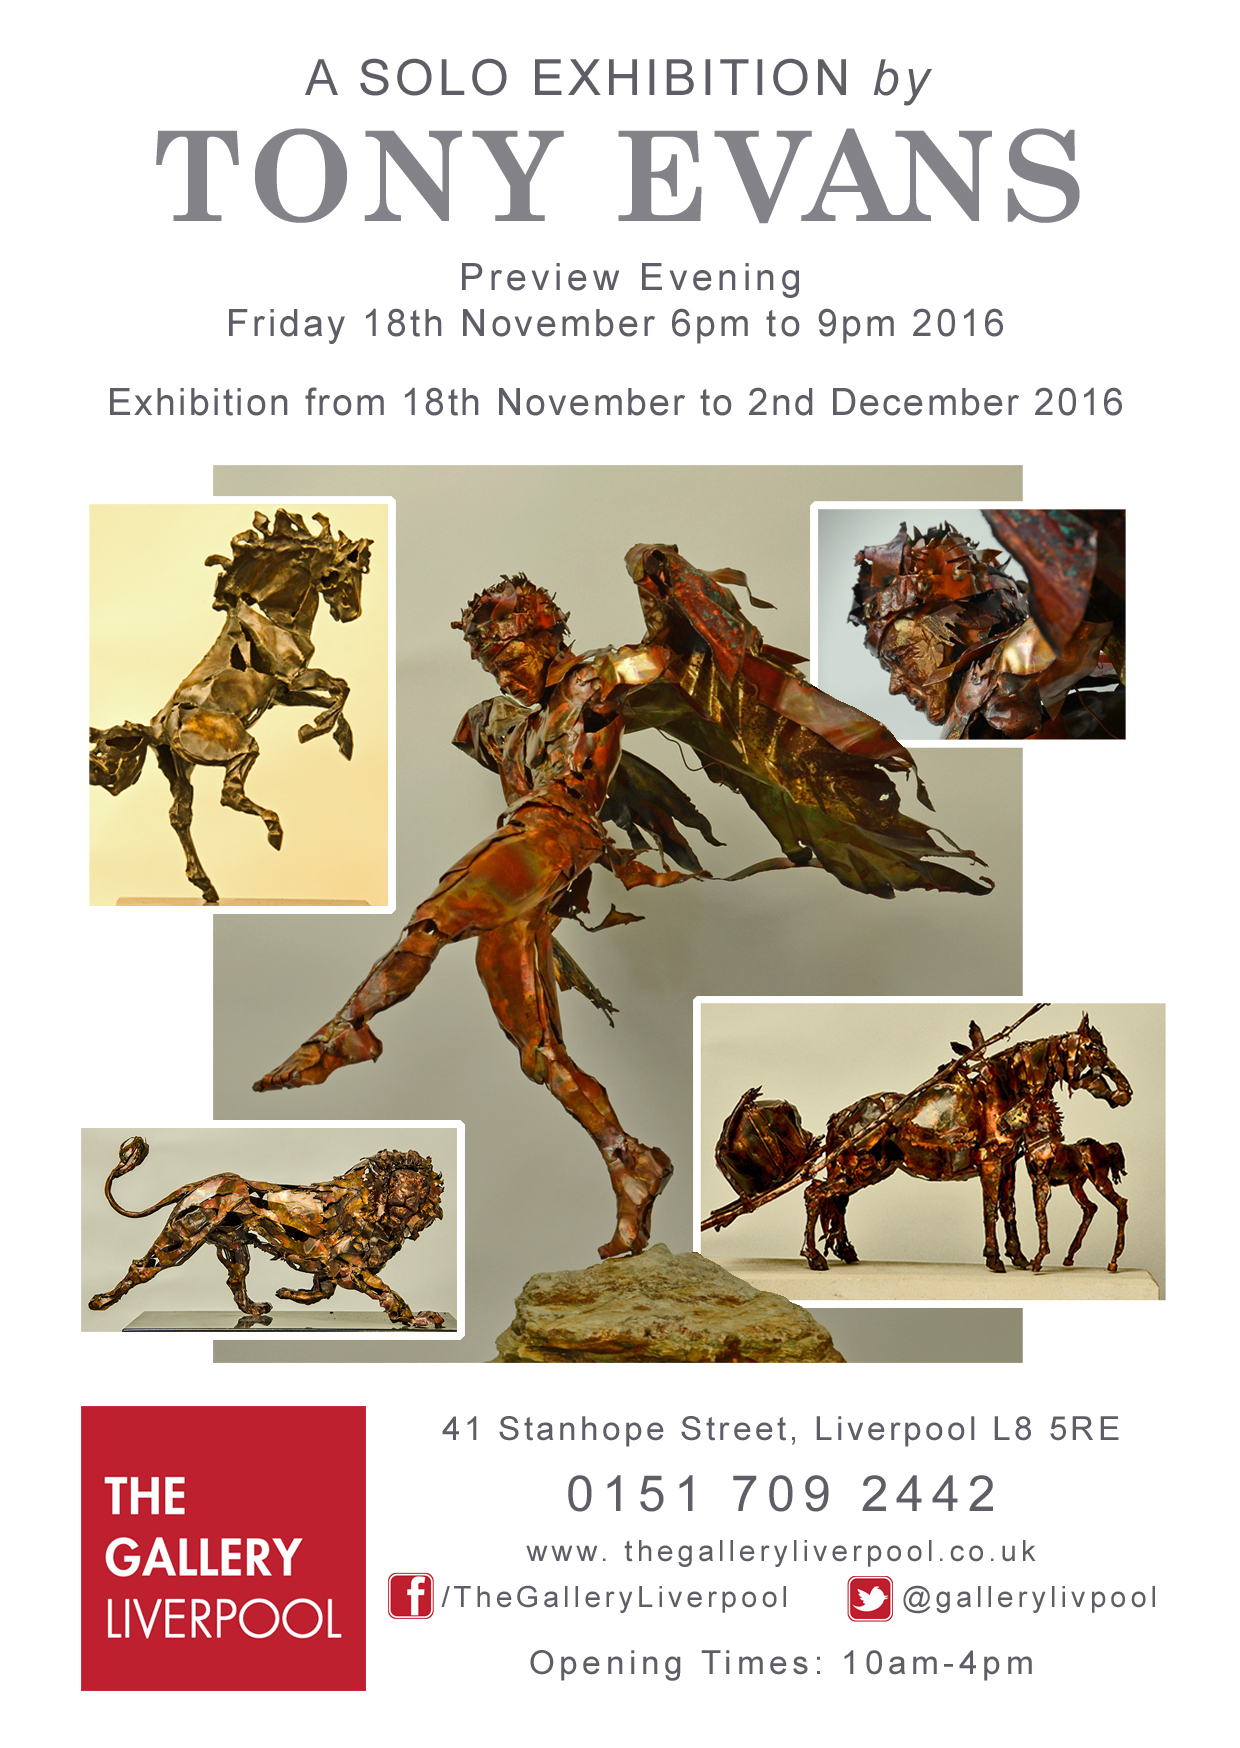 The Gallery Liverpool: Tony Evans a Solo Exhibition